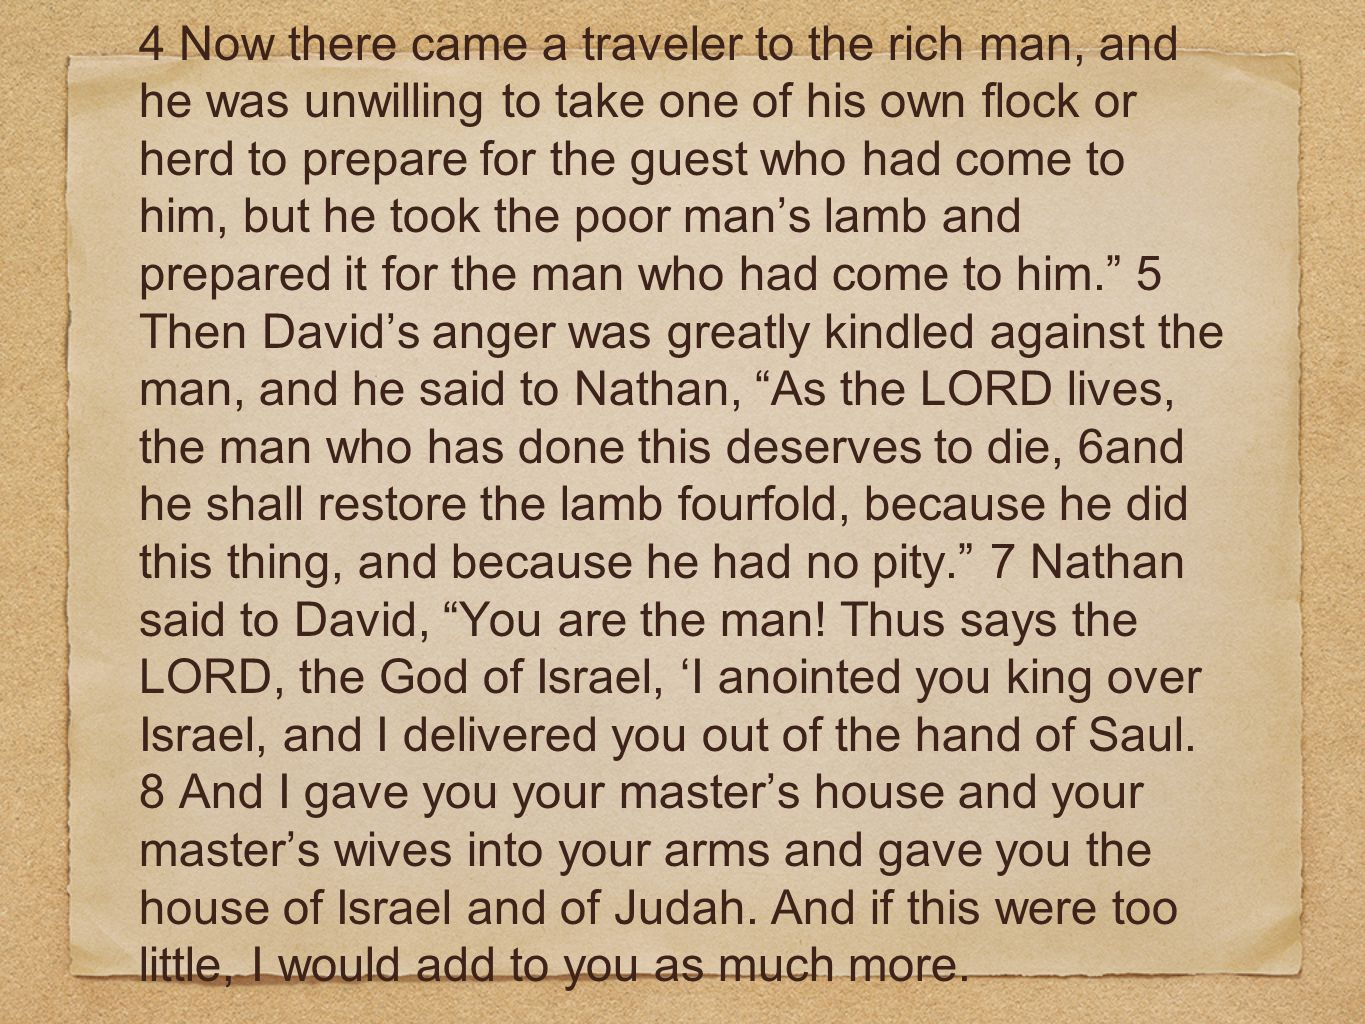 4 Now there came a traveler to the rich man, and he was unwilling to take one of his own flock or herd to prepare for the guest who had come to him, but he took the poor man's lamb and prepared it for the man who had come to him. 5 Then David's anger was greatly kindled against the man, and he said to Nathan, As the LORD lives, the man who has done this deserves to die, 6and he shall restore the lamb fourfold, because he did this thing, and because he had no pity. 7 Nathan said to David, You are the man.